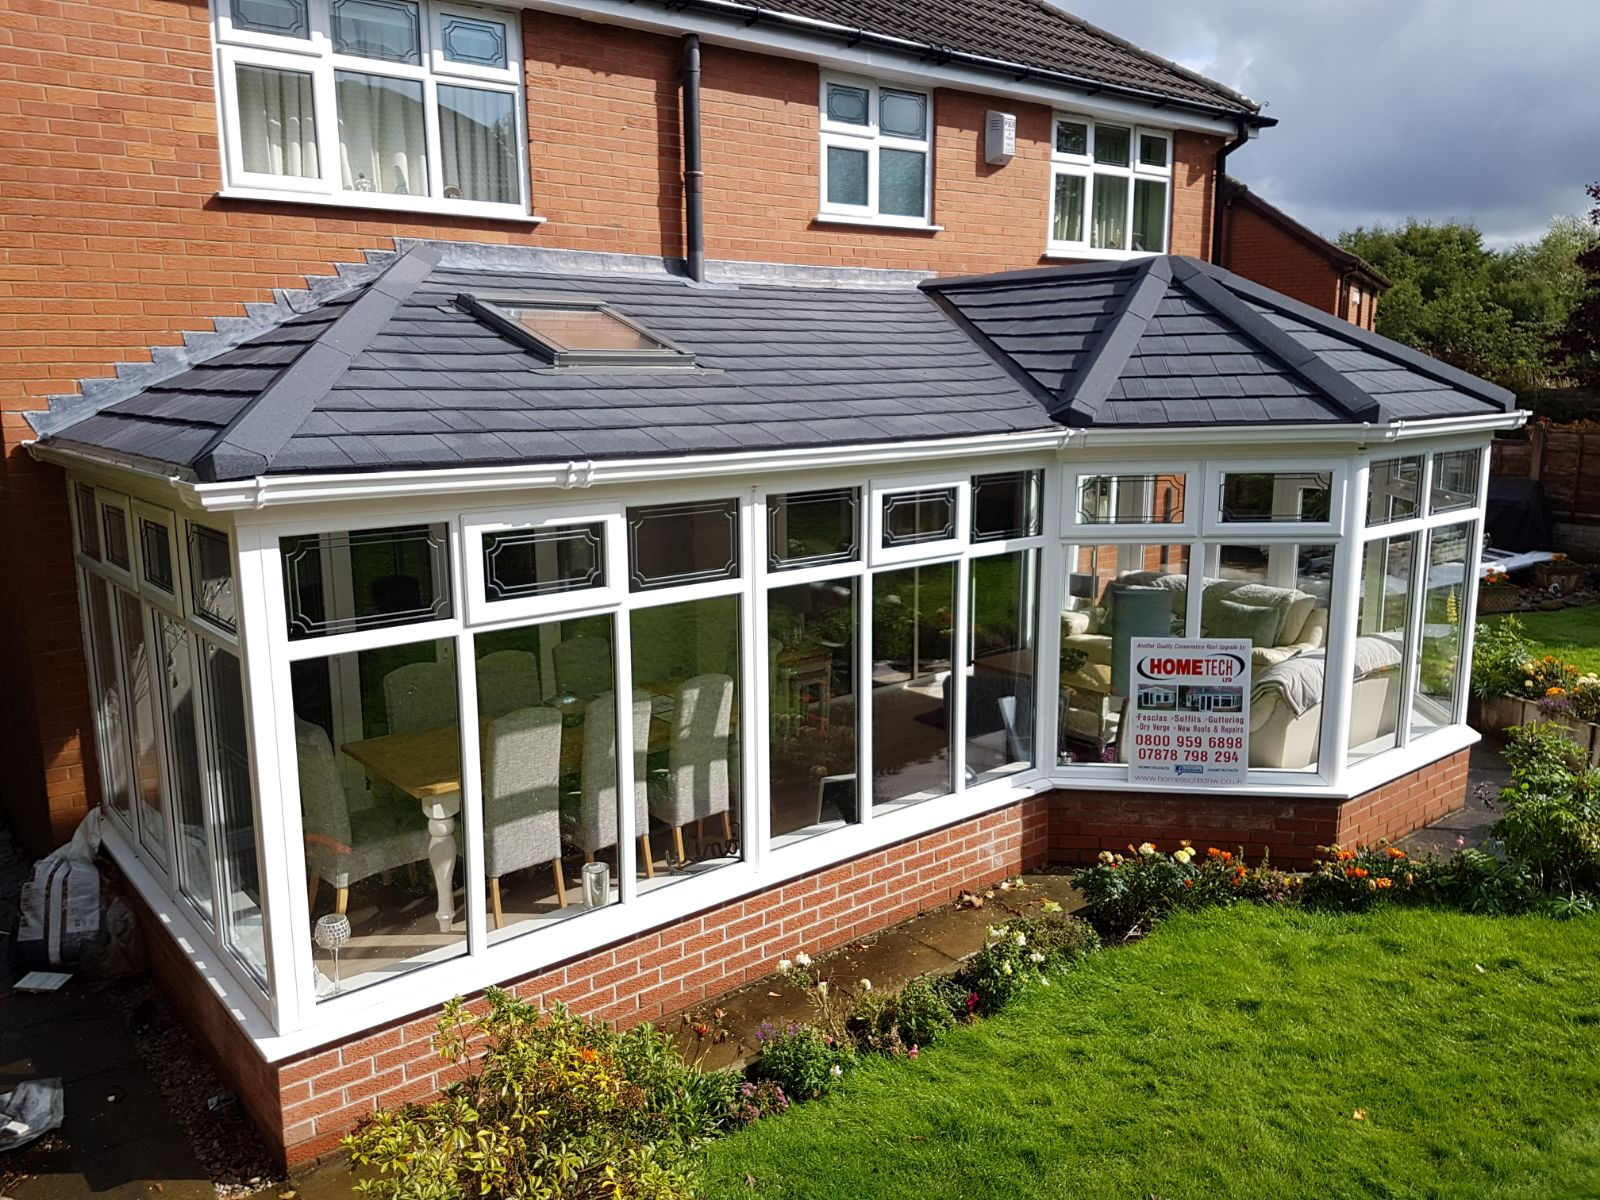 image showing conservatory with advertisement to contact a roofer in sheffield